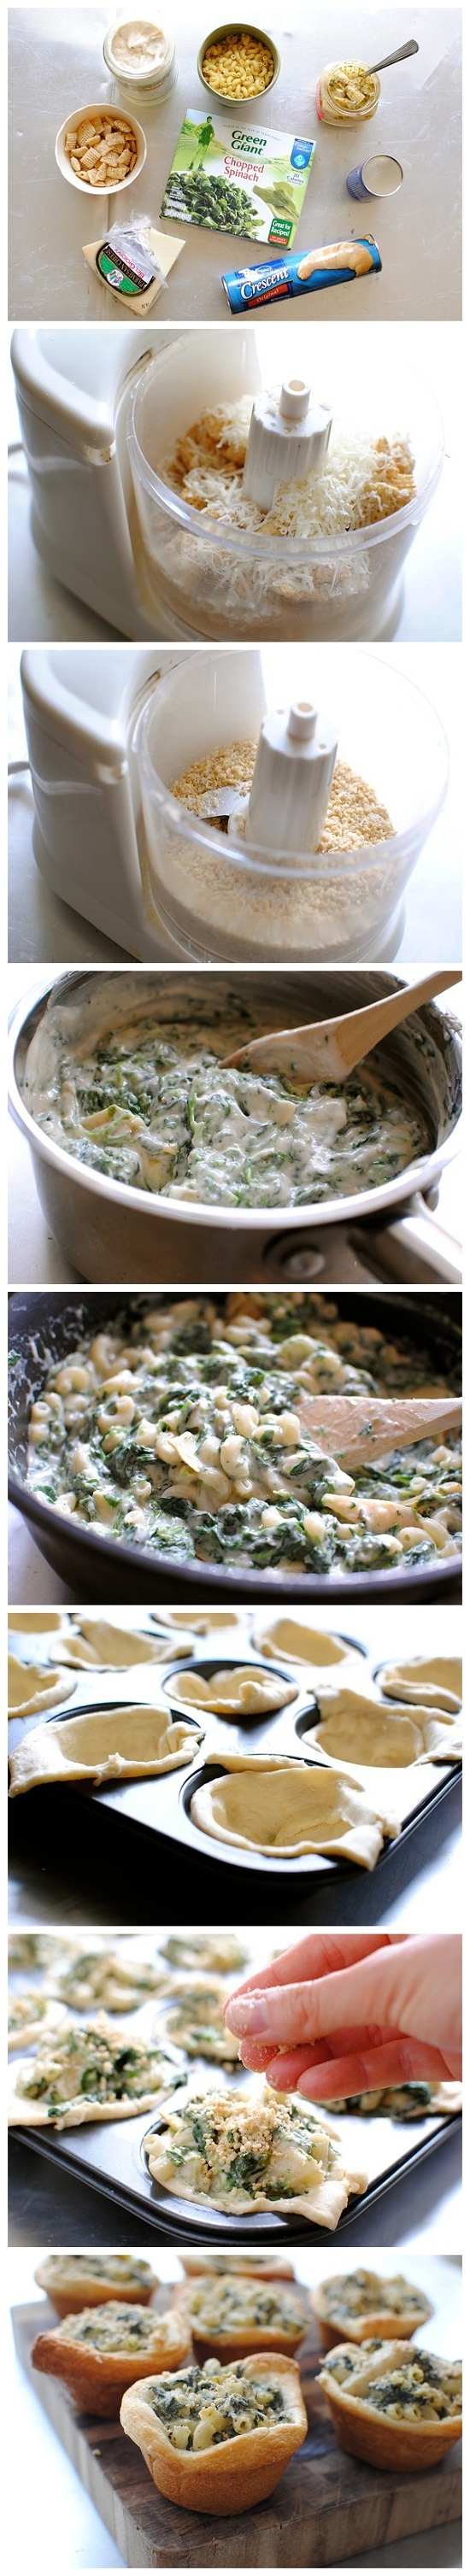 Spinach-Artichoke Mac 'n Cheese Cups | food and drink | Pinterest